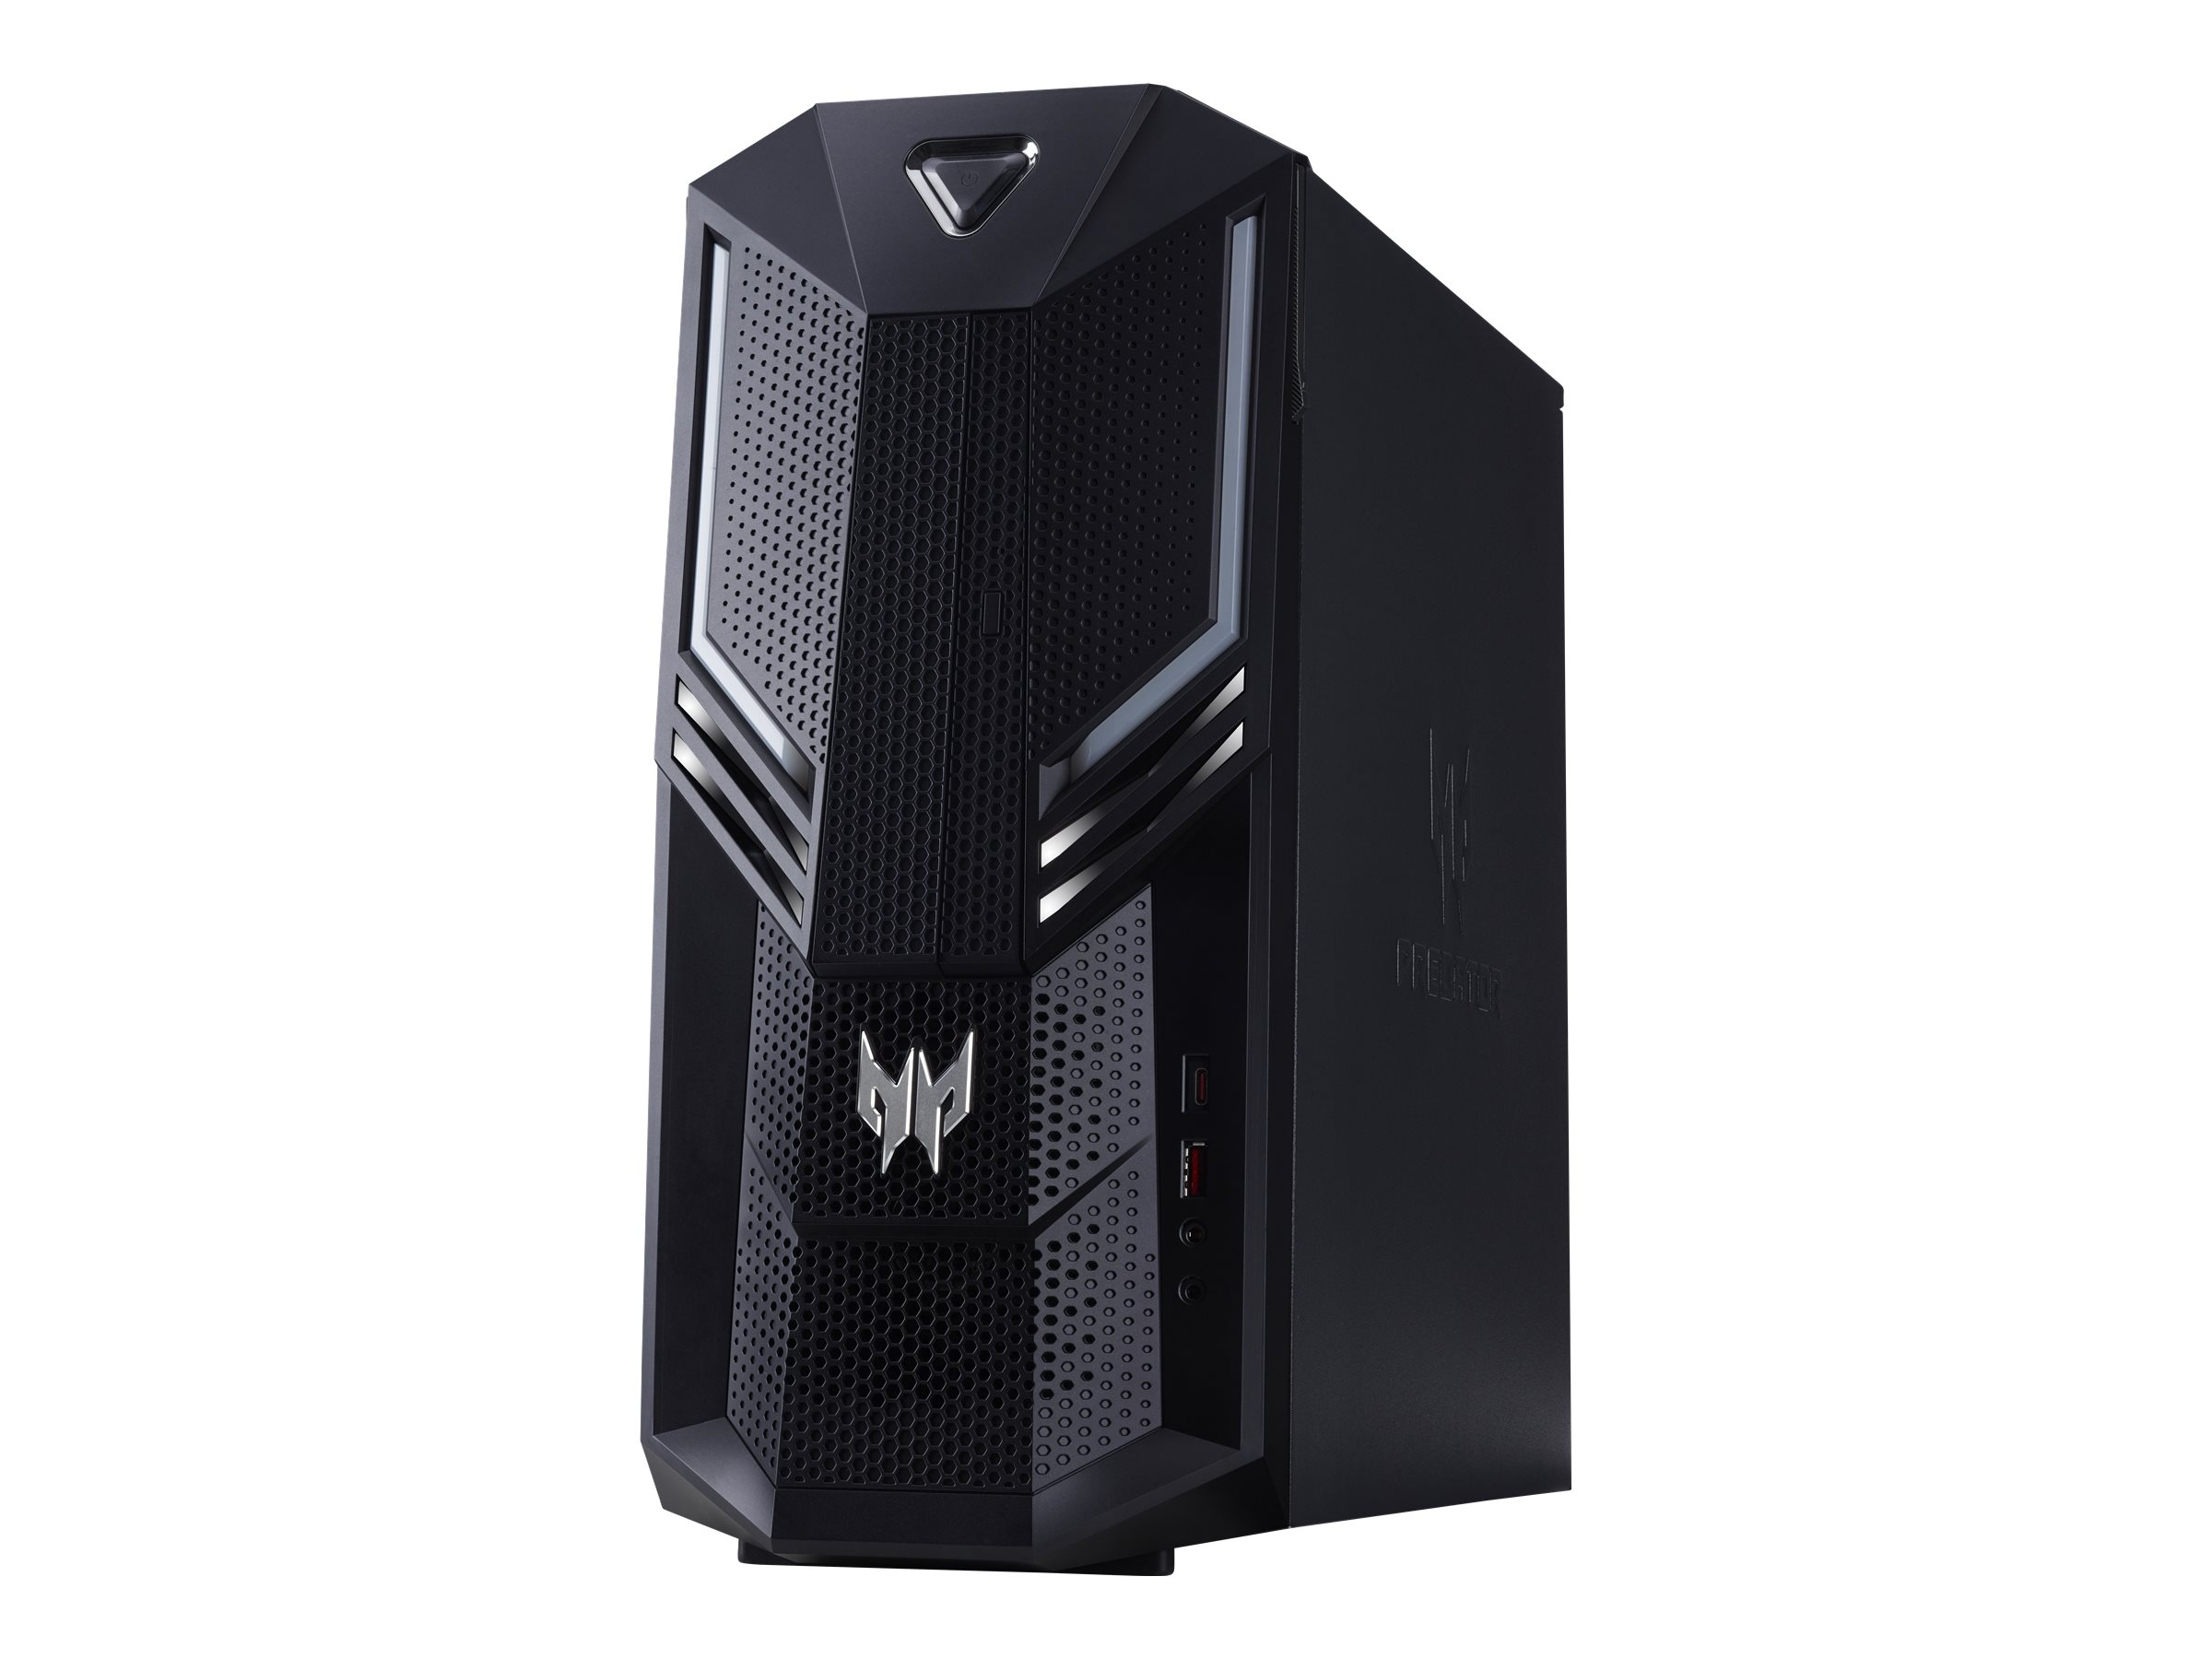 Acer Predator Orion 3000 PO3-600 - tower - Core i5 9400 2.9 GHz - 8 GB - SSD 256 GB, HDD 1 TB